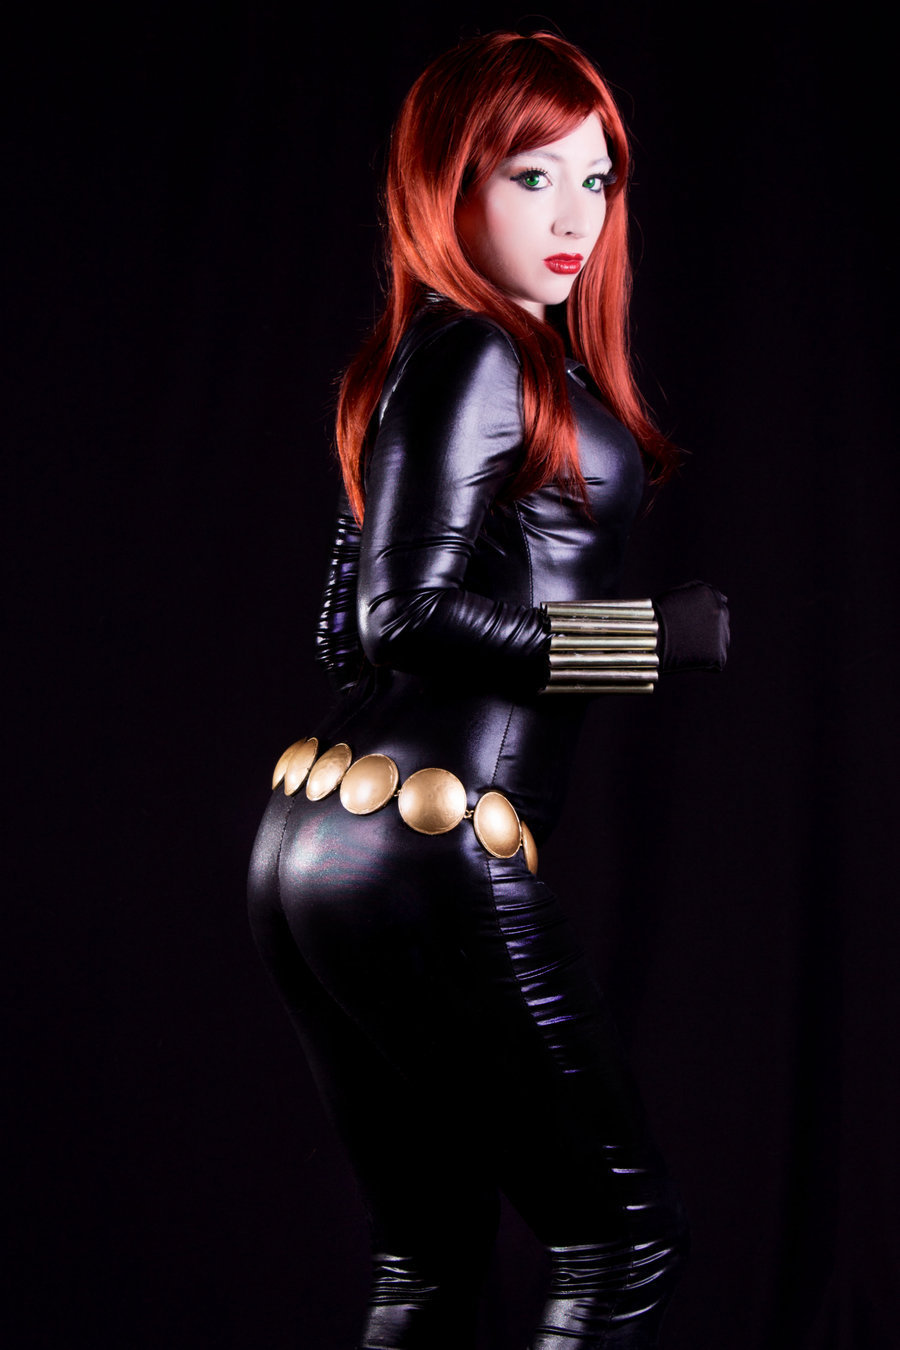 Black Widow 01 by *Kitty-Honey You can also follow my cosplays in this sites: FB Page: http://www.facebook.com/KittyHoneyCosplayWorld Cosplay: http://worldcosplay.net/member/Kitty-Honey/Cure: http://en.curecos.com/profile/?ch=321786Deviantart: http://kitty-honey.deviantart.com/